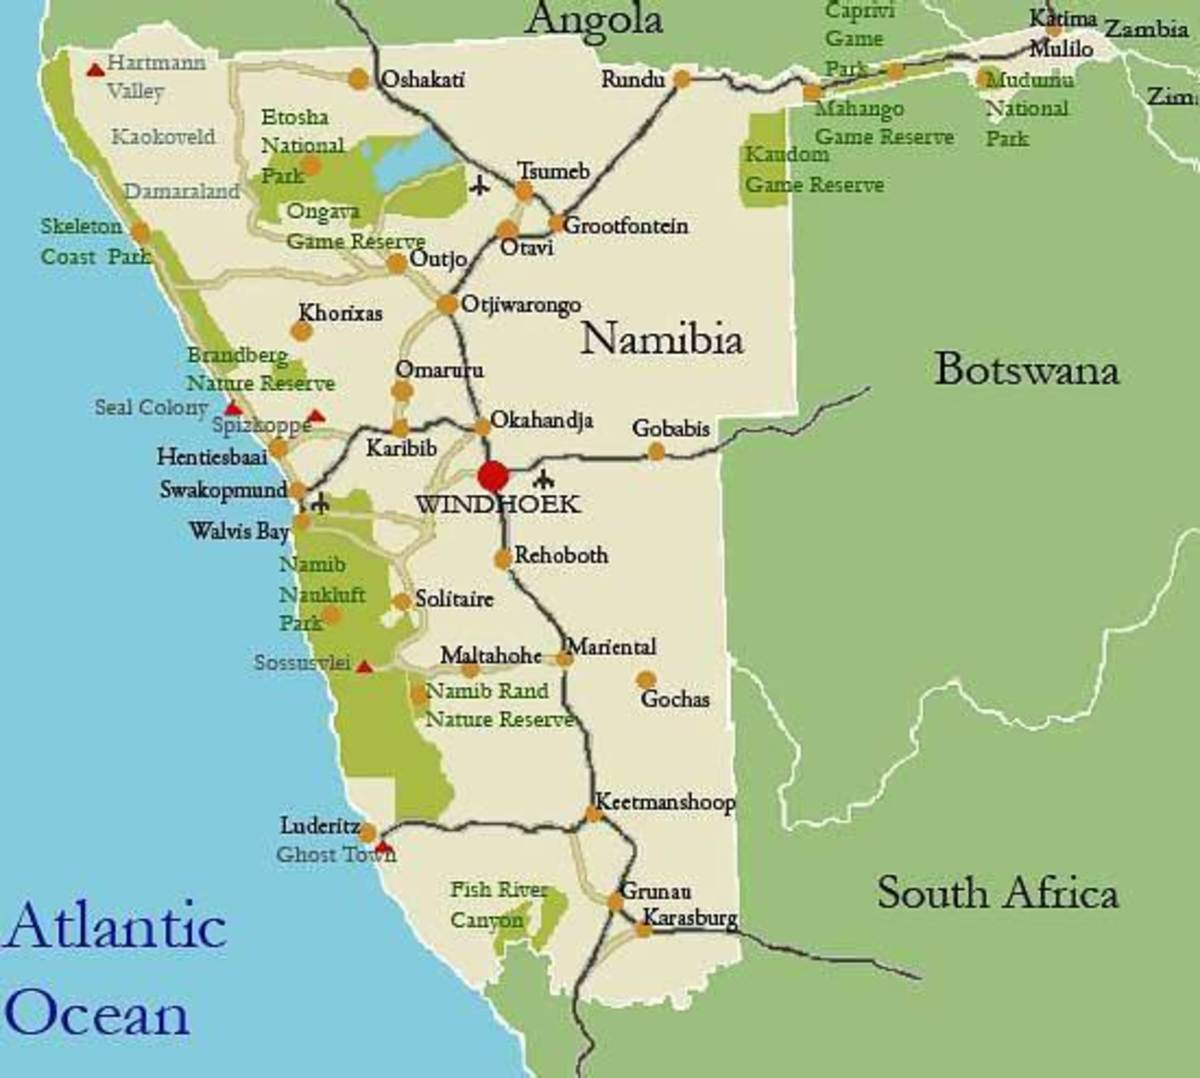 http://www.afrizim.com/Travel_Guides/Namibia/Attractions.asp